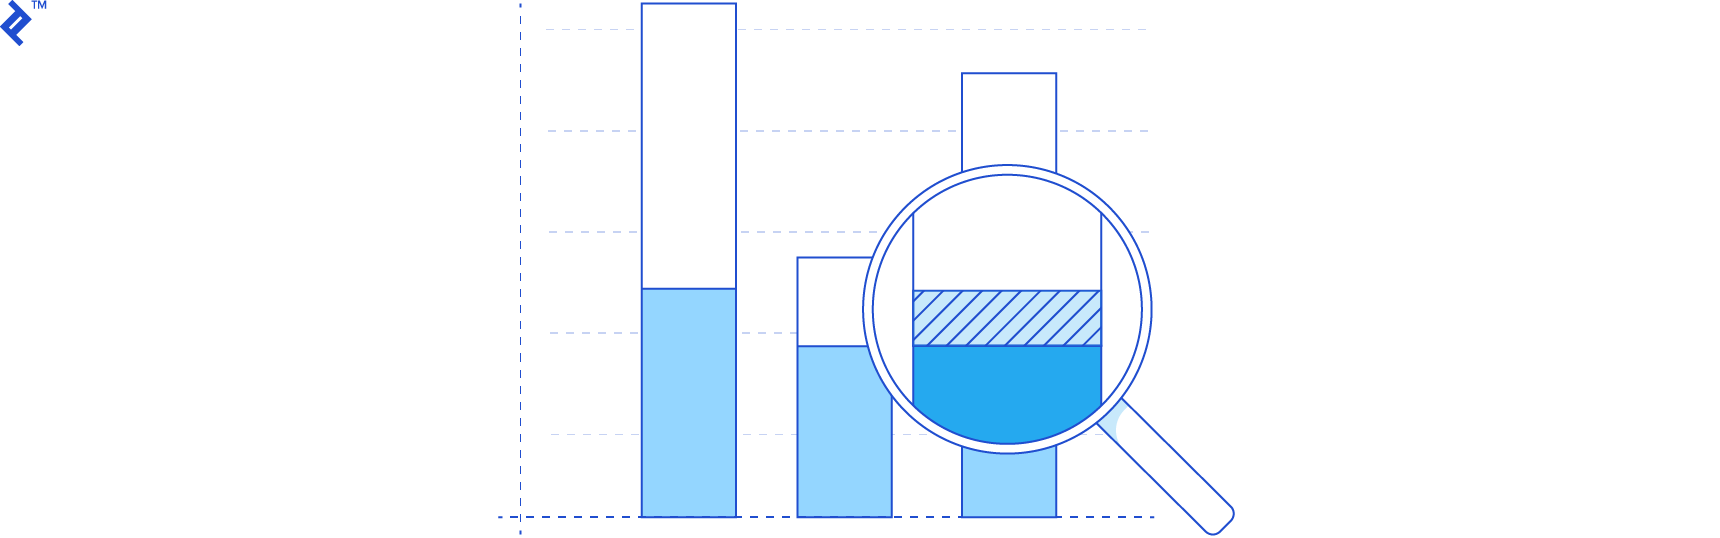 Illustration of a business plan chart